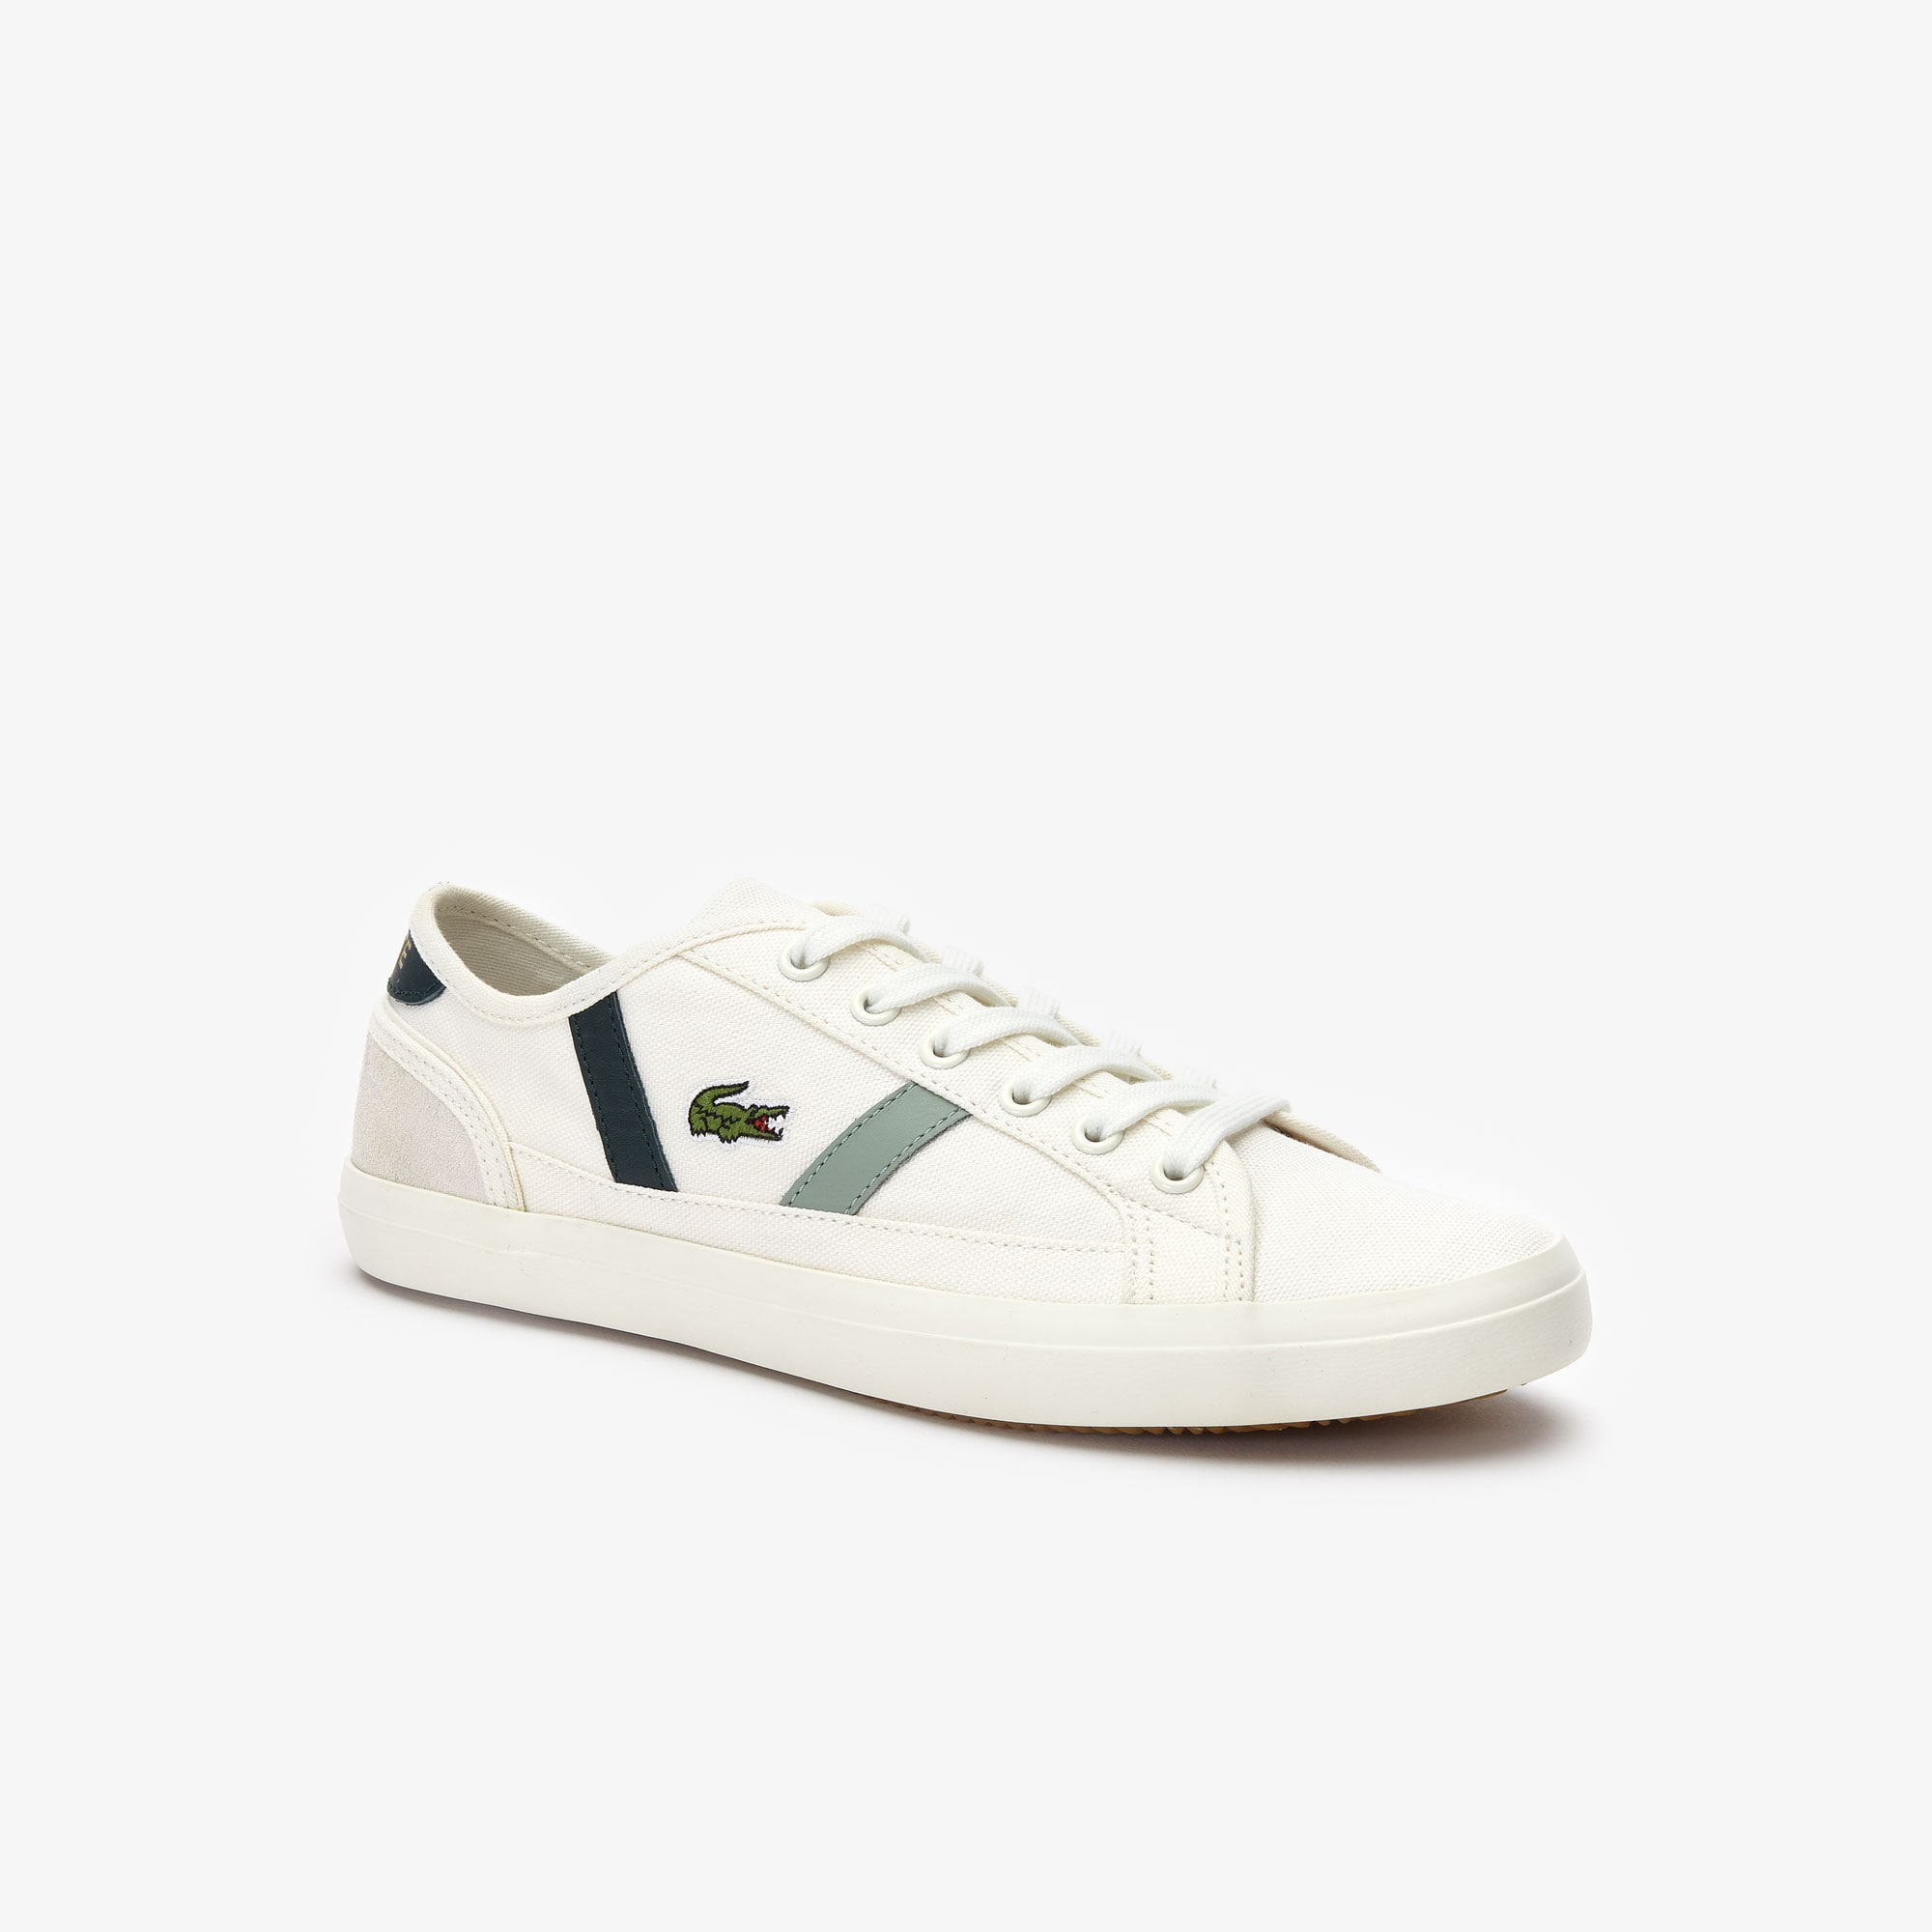 Women's Sideline Canvas and Leather